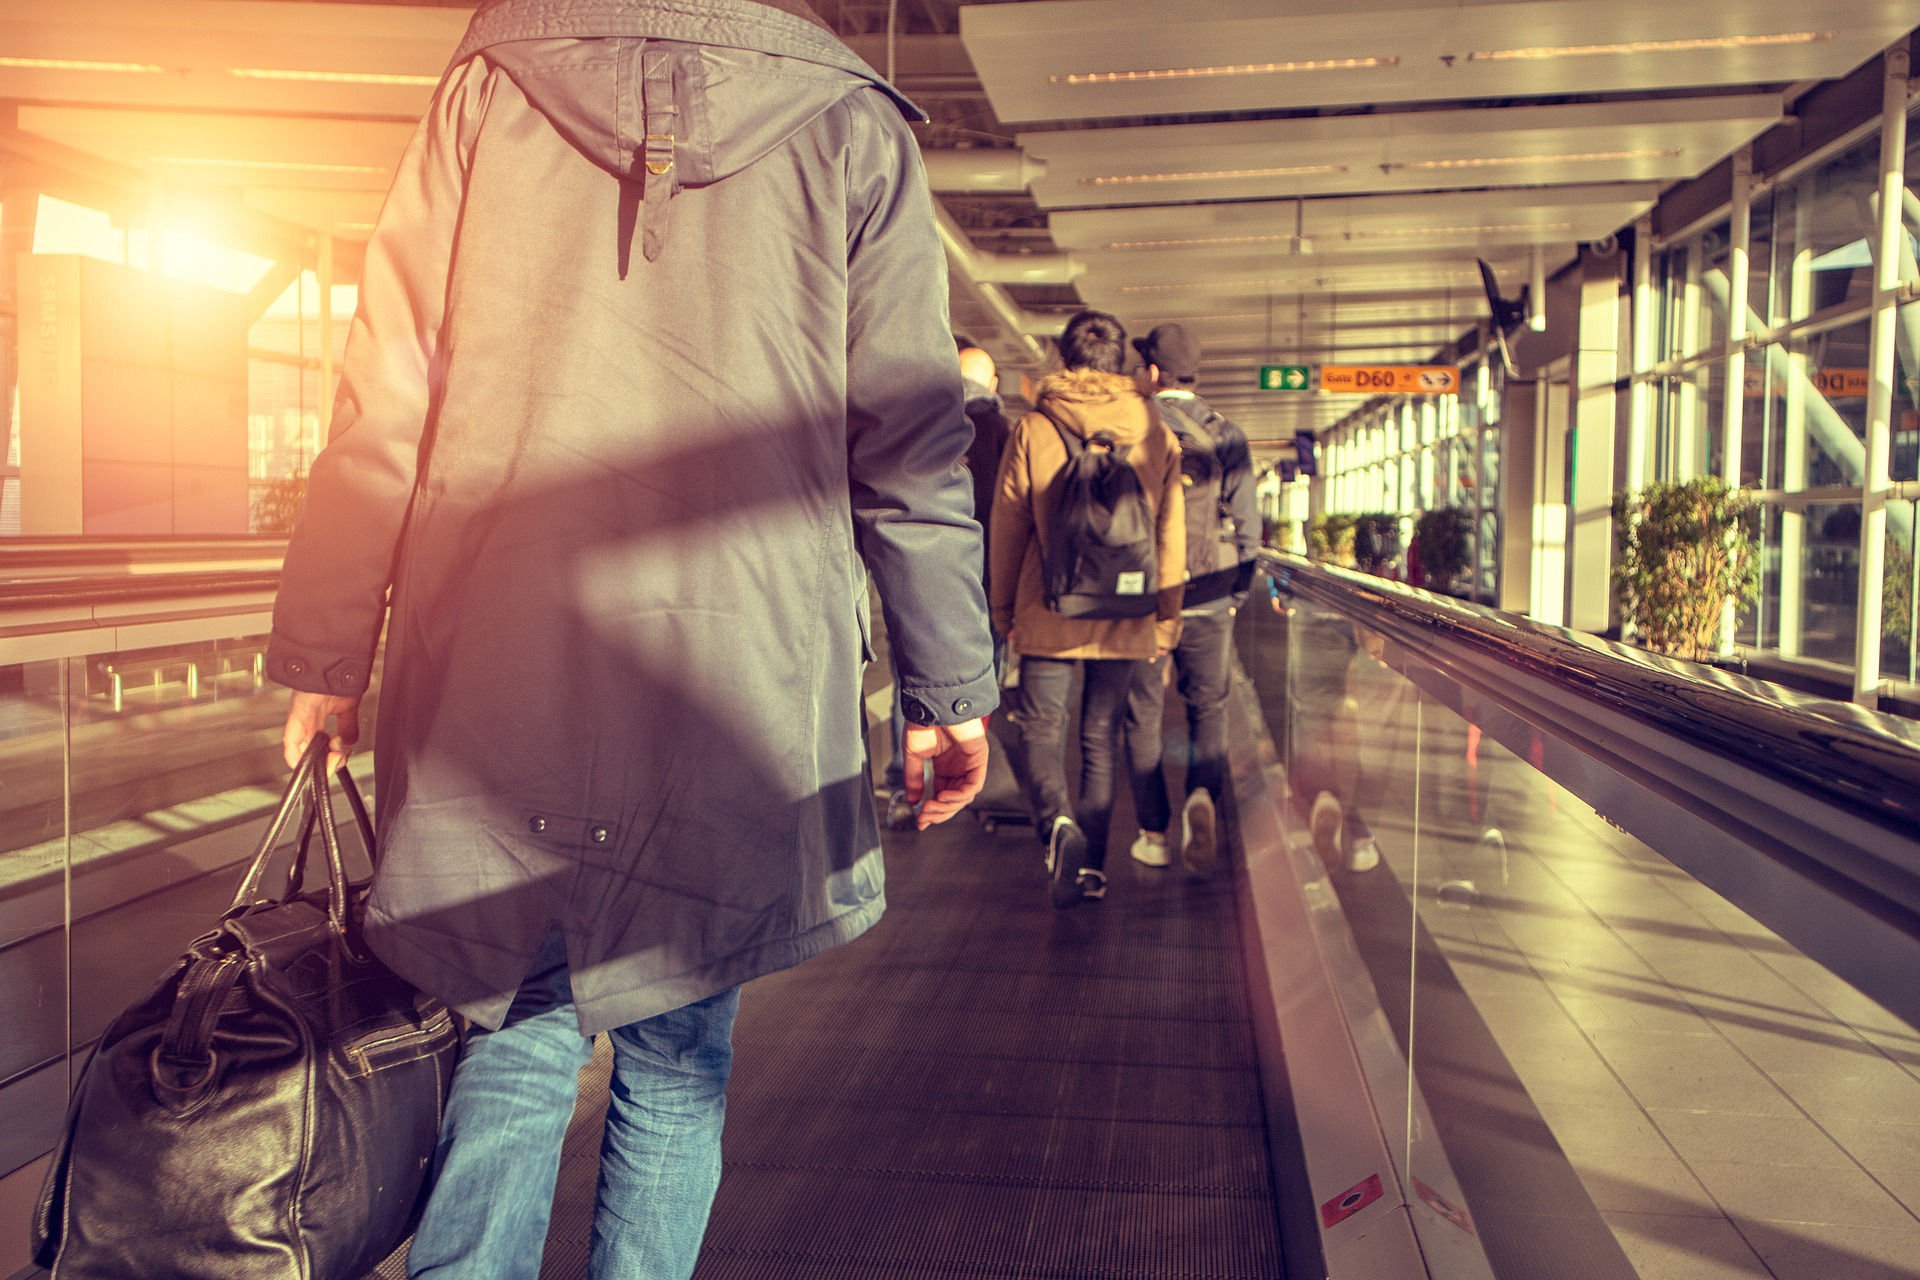 Key changes to Australian immigration Law in 2021 - Part #2 - COVID concession for certain family visa applicants unable to depart Australia due to border closures